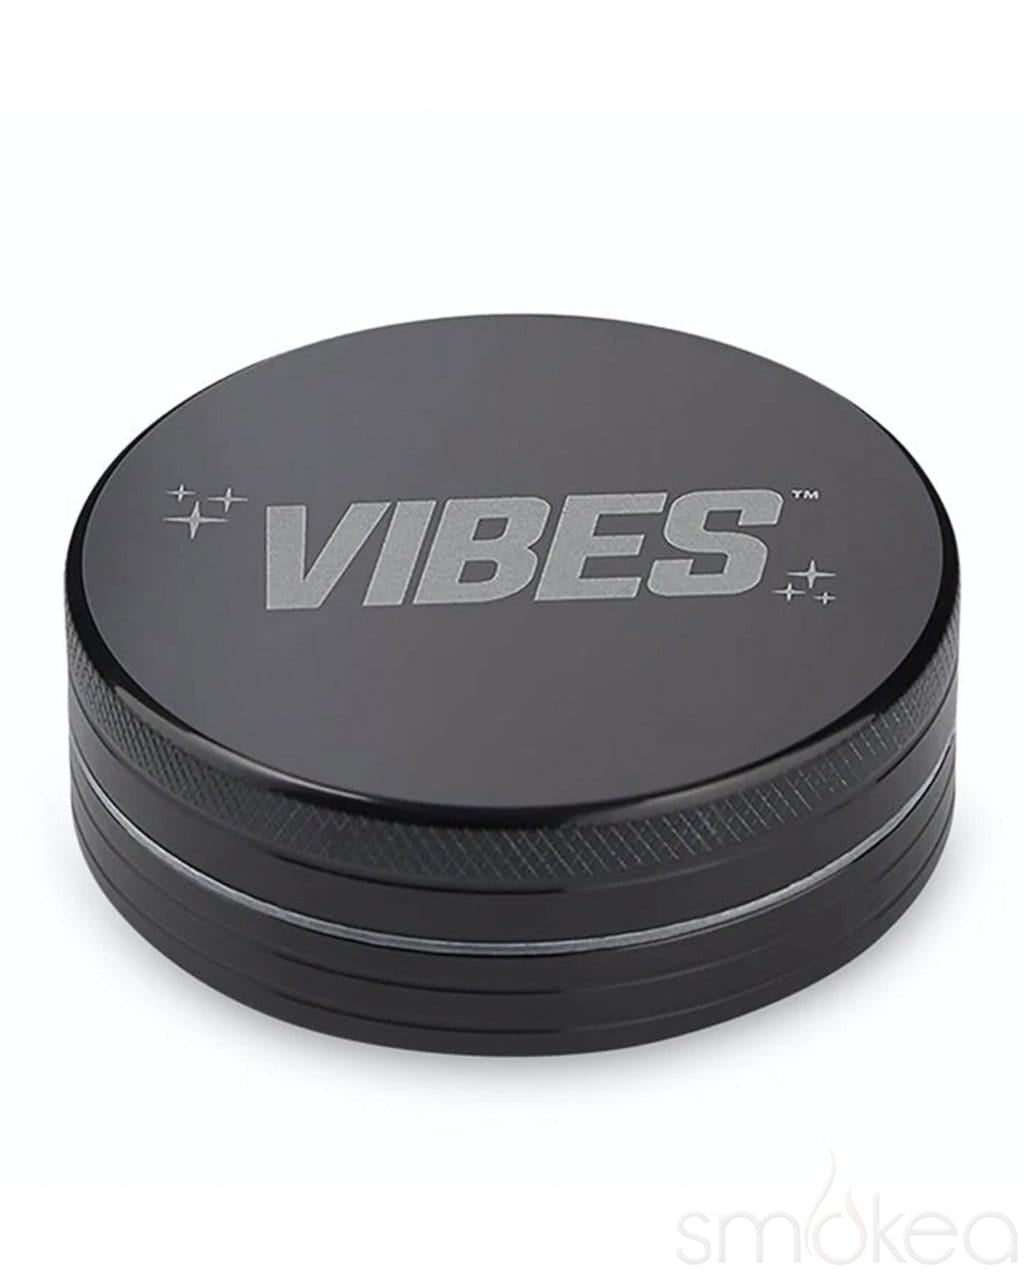 Vibes x Aerospaced Aluminum 2-Piece Grinder - SMOKEA